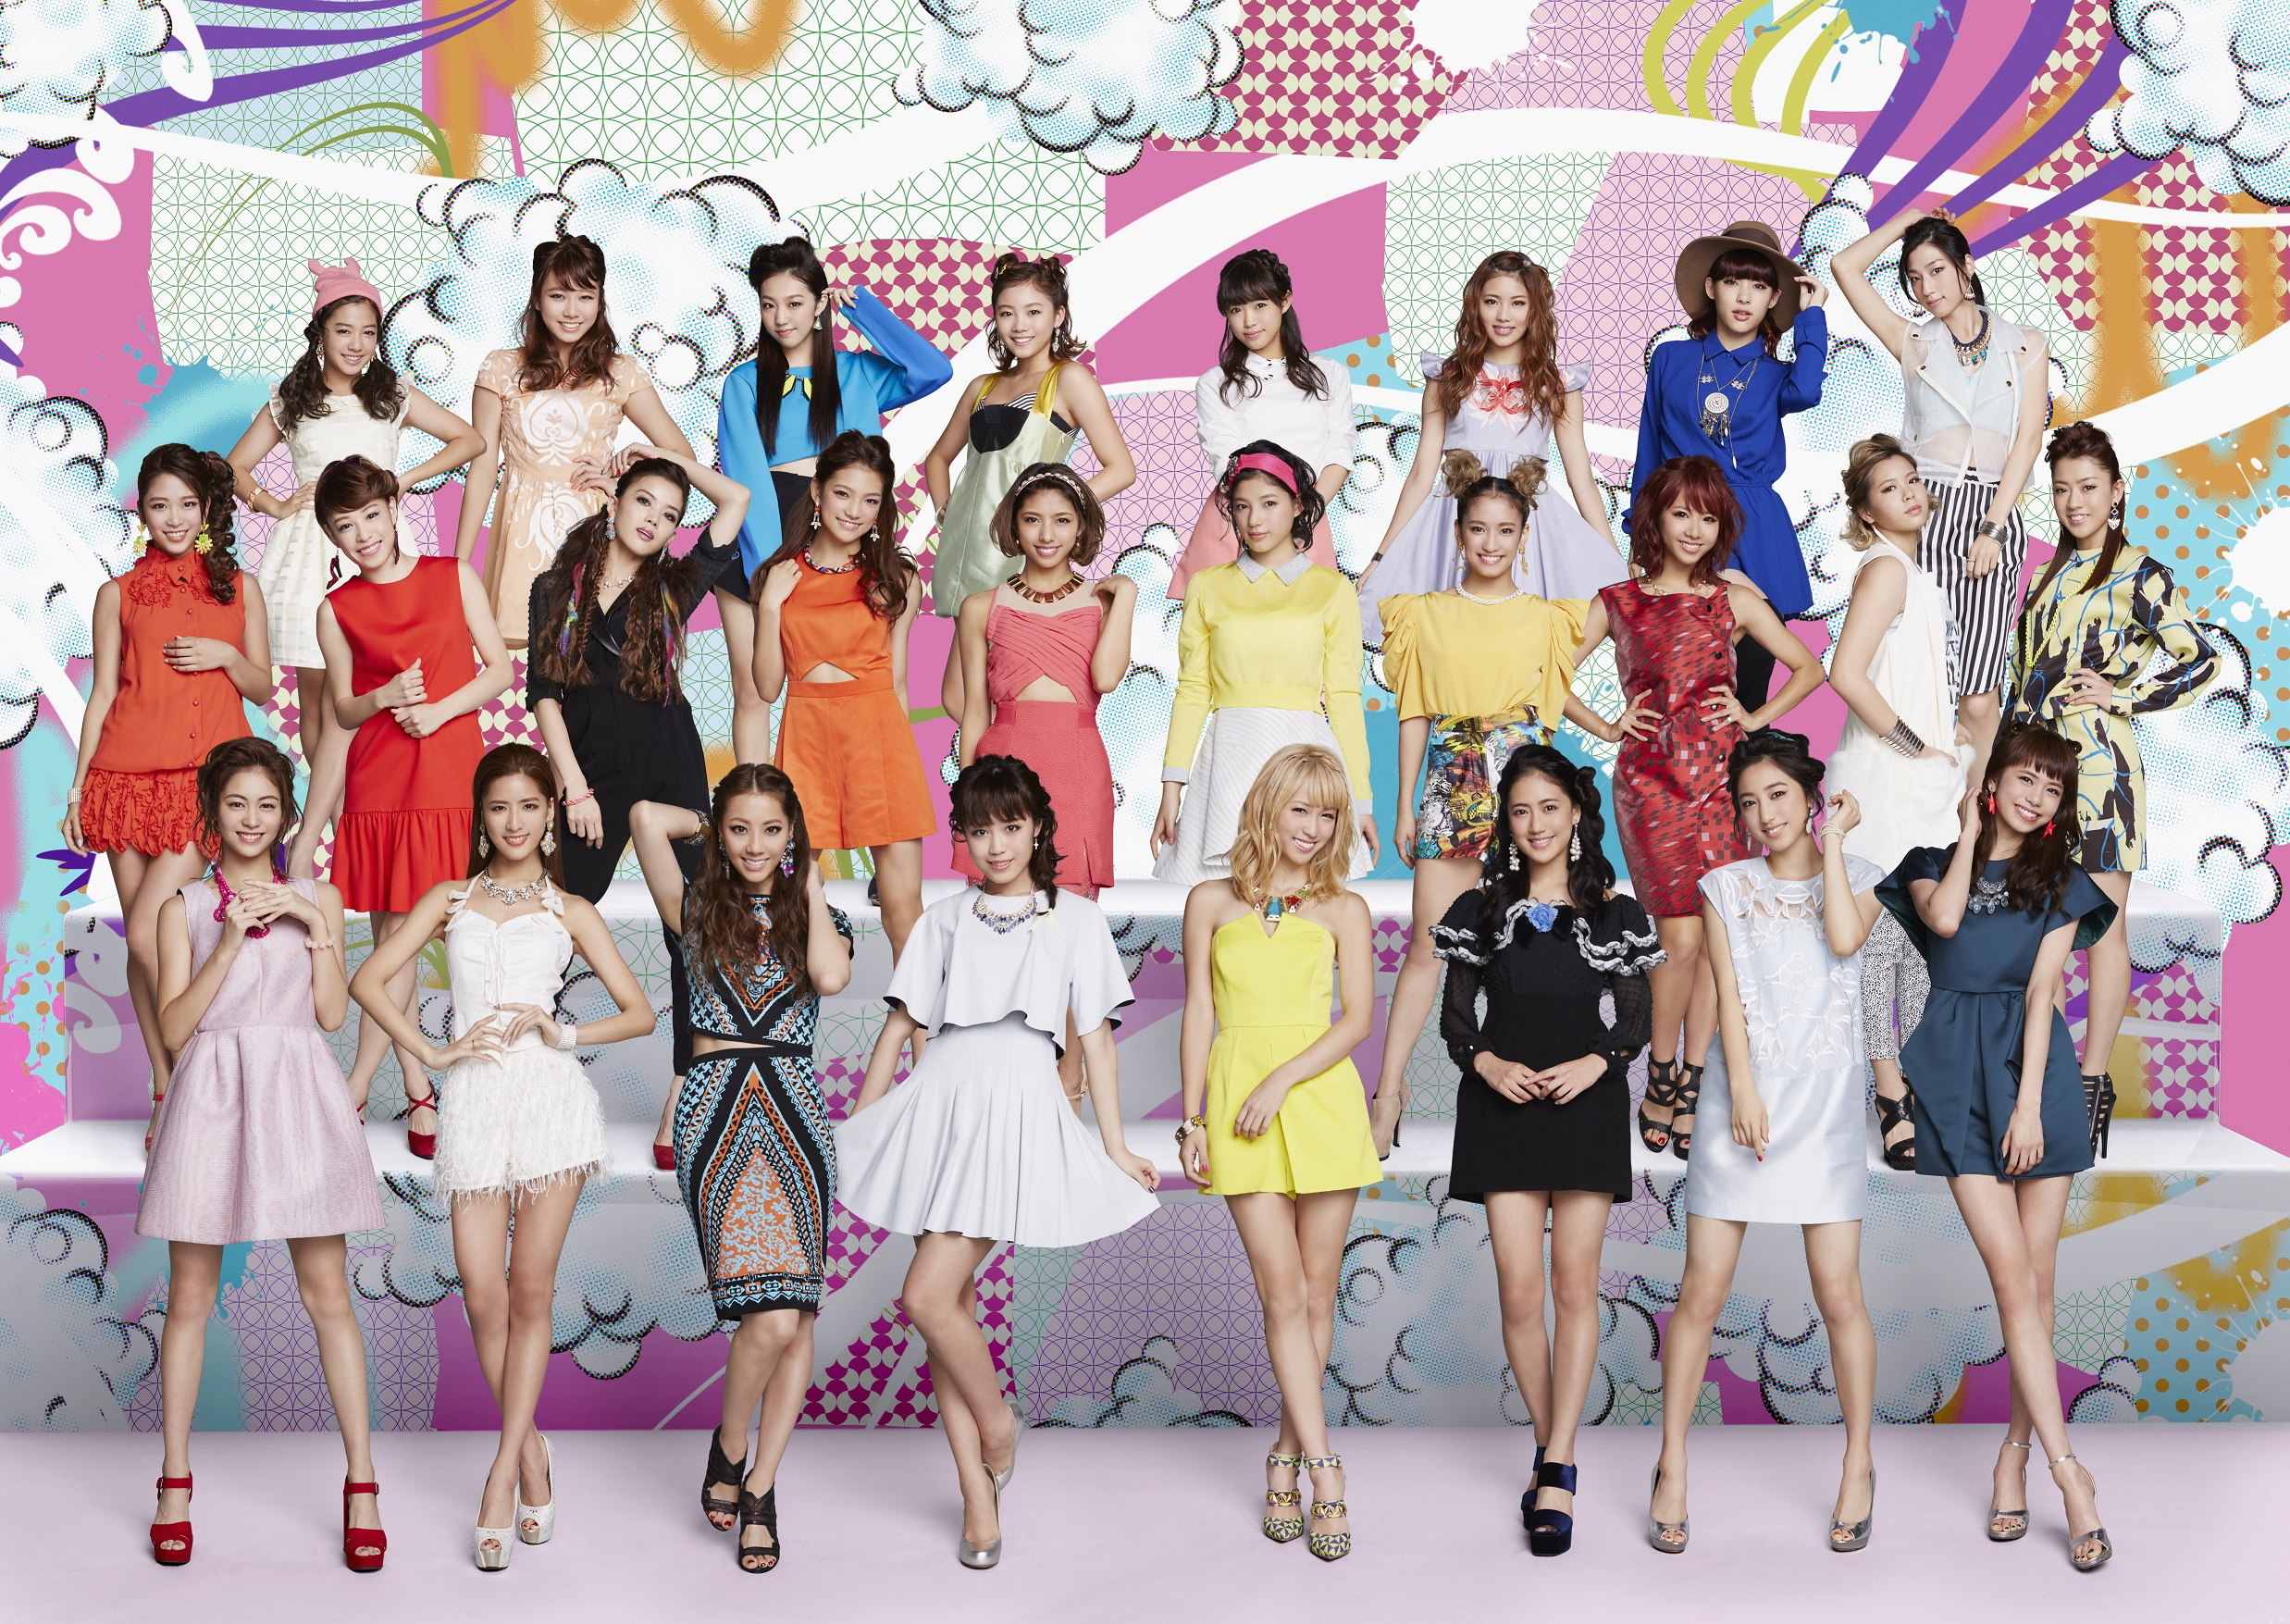 E-girls, promovendo o E.G. TIME